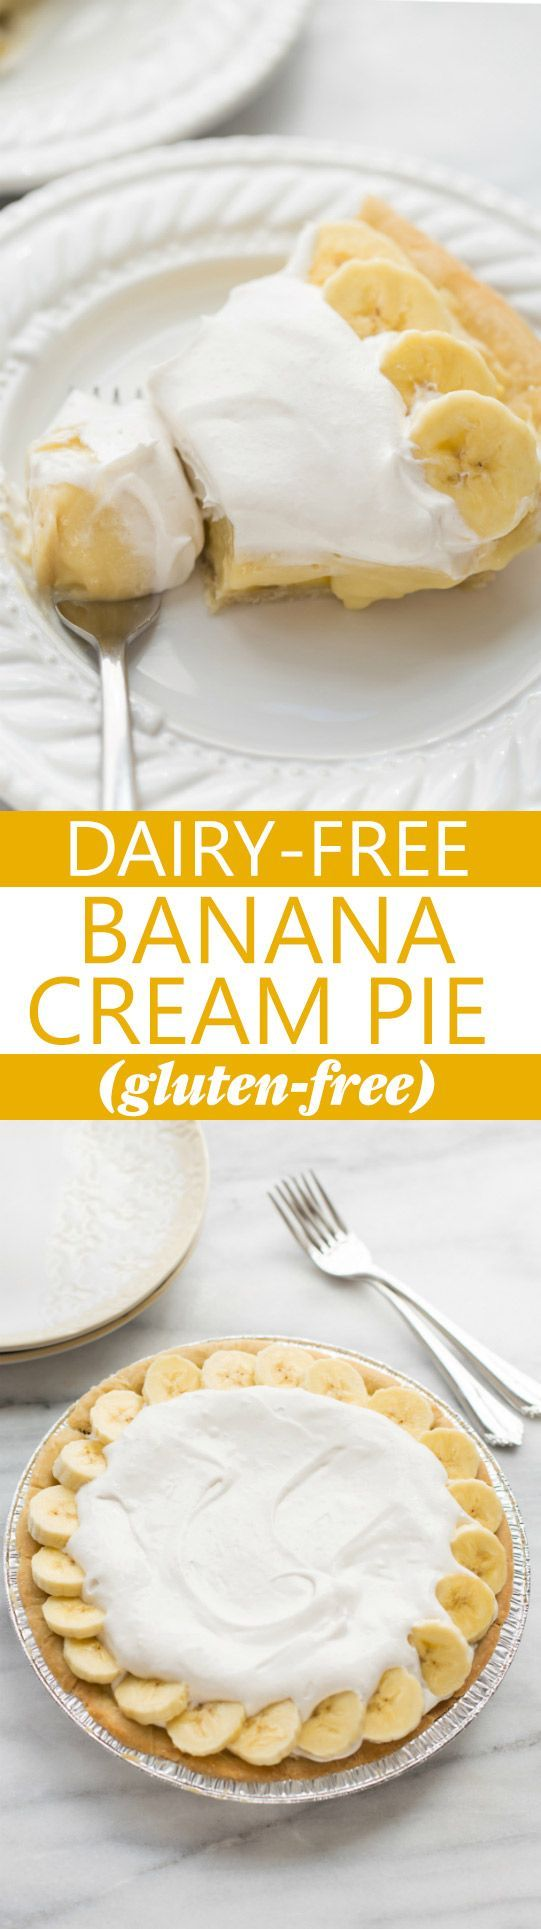 Dairy-Free Banana Cream Pie! Made with REAL dairy-free vanilla pudding. The perfect Thanksgiving dessert for guests with food allergies! (Gluten-Free) #glutenfreepie #dairyfreepie #glutenfreethanksgiving